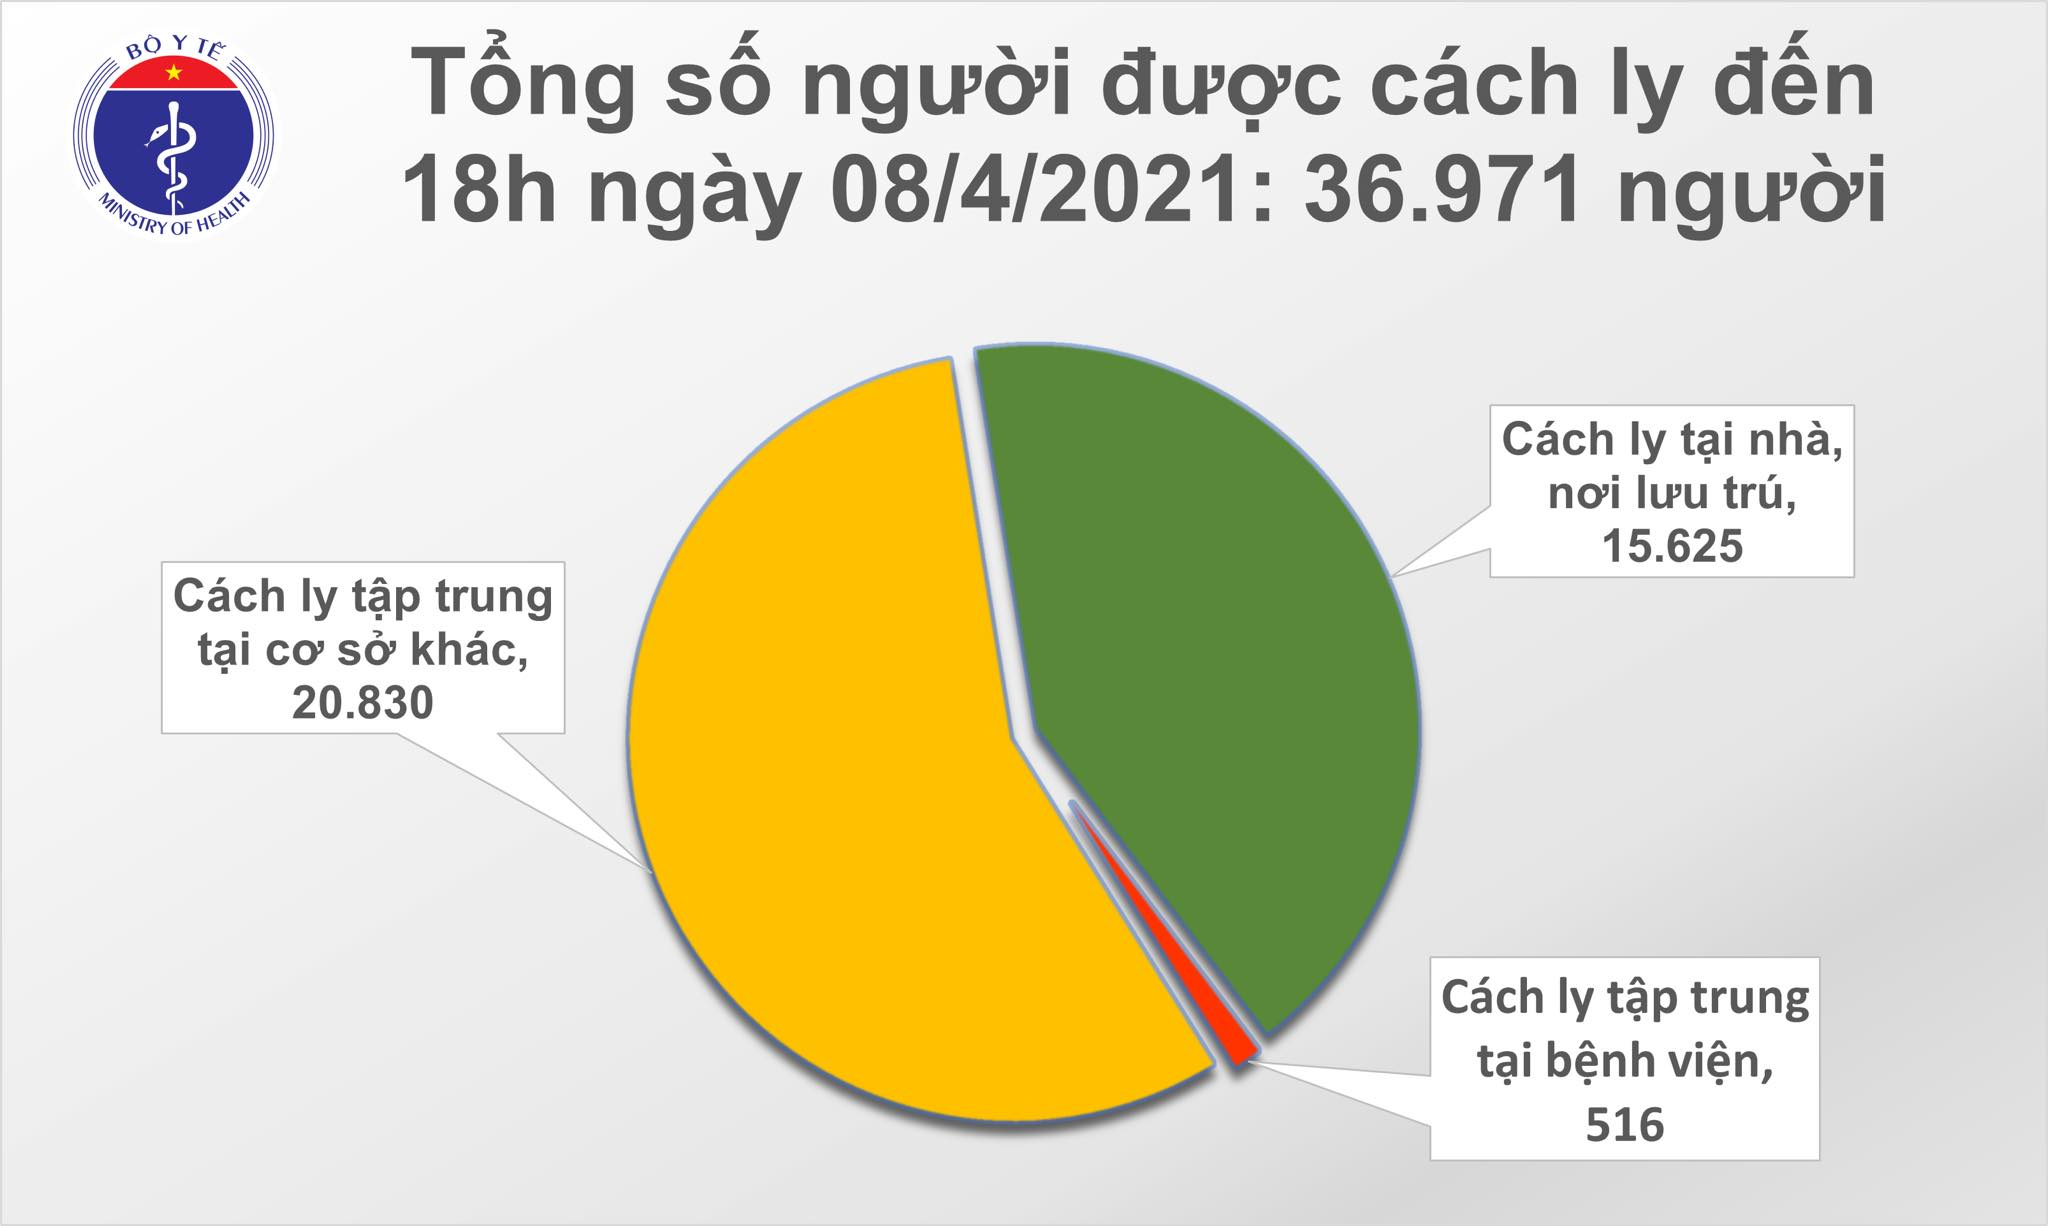 On the afternoon of April 8, 9 more cases of Covid-19 were reported in 5 provinces and cities - Photo 2.